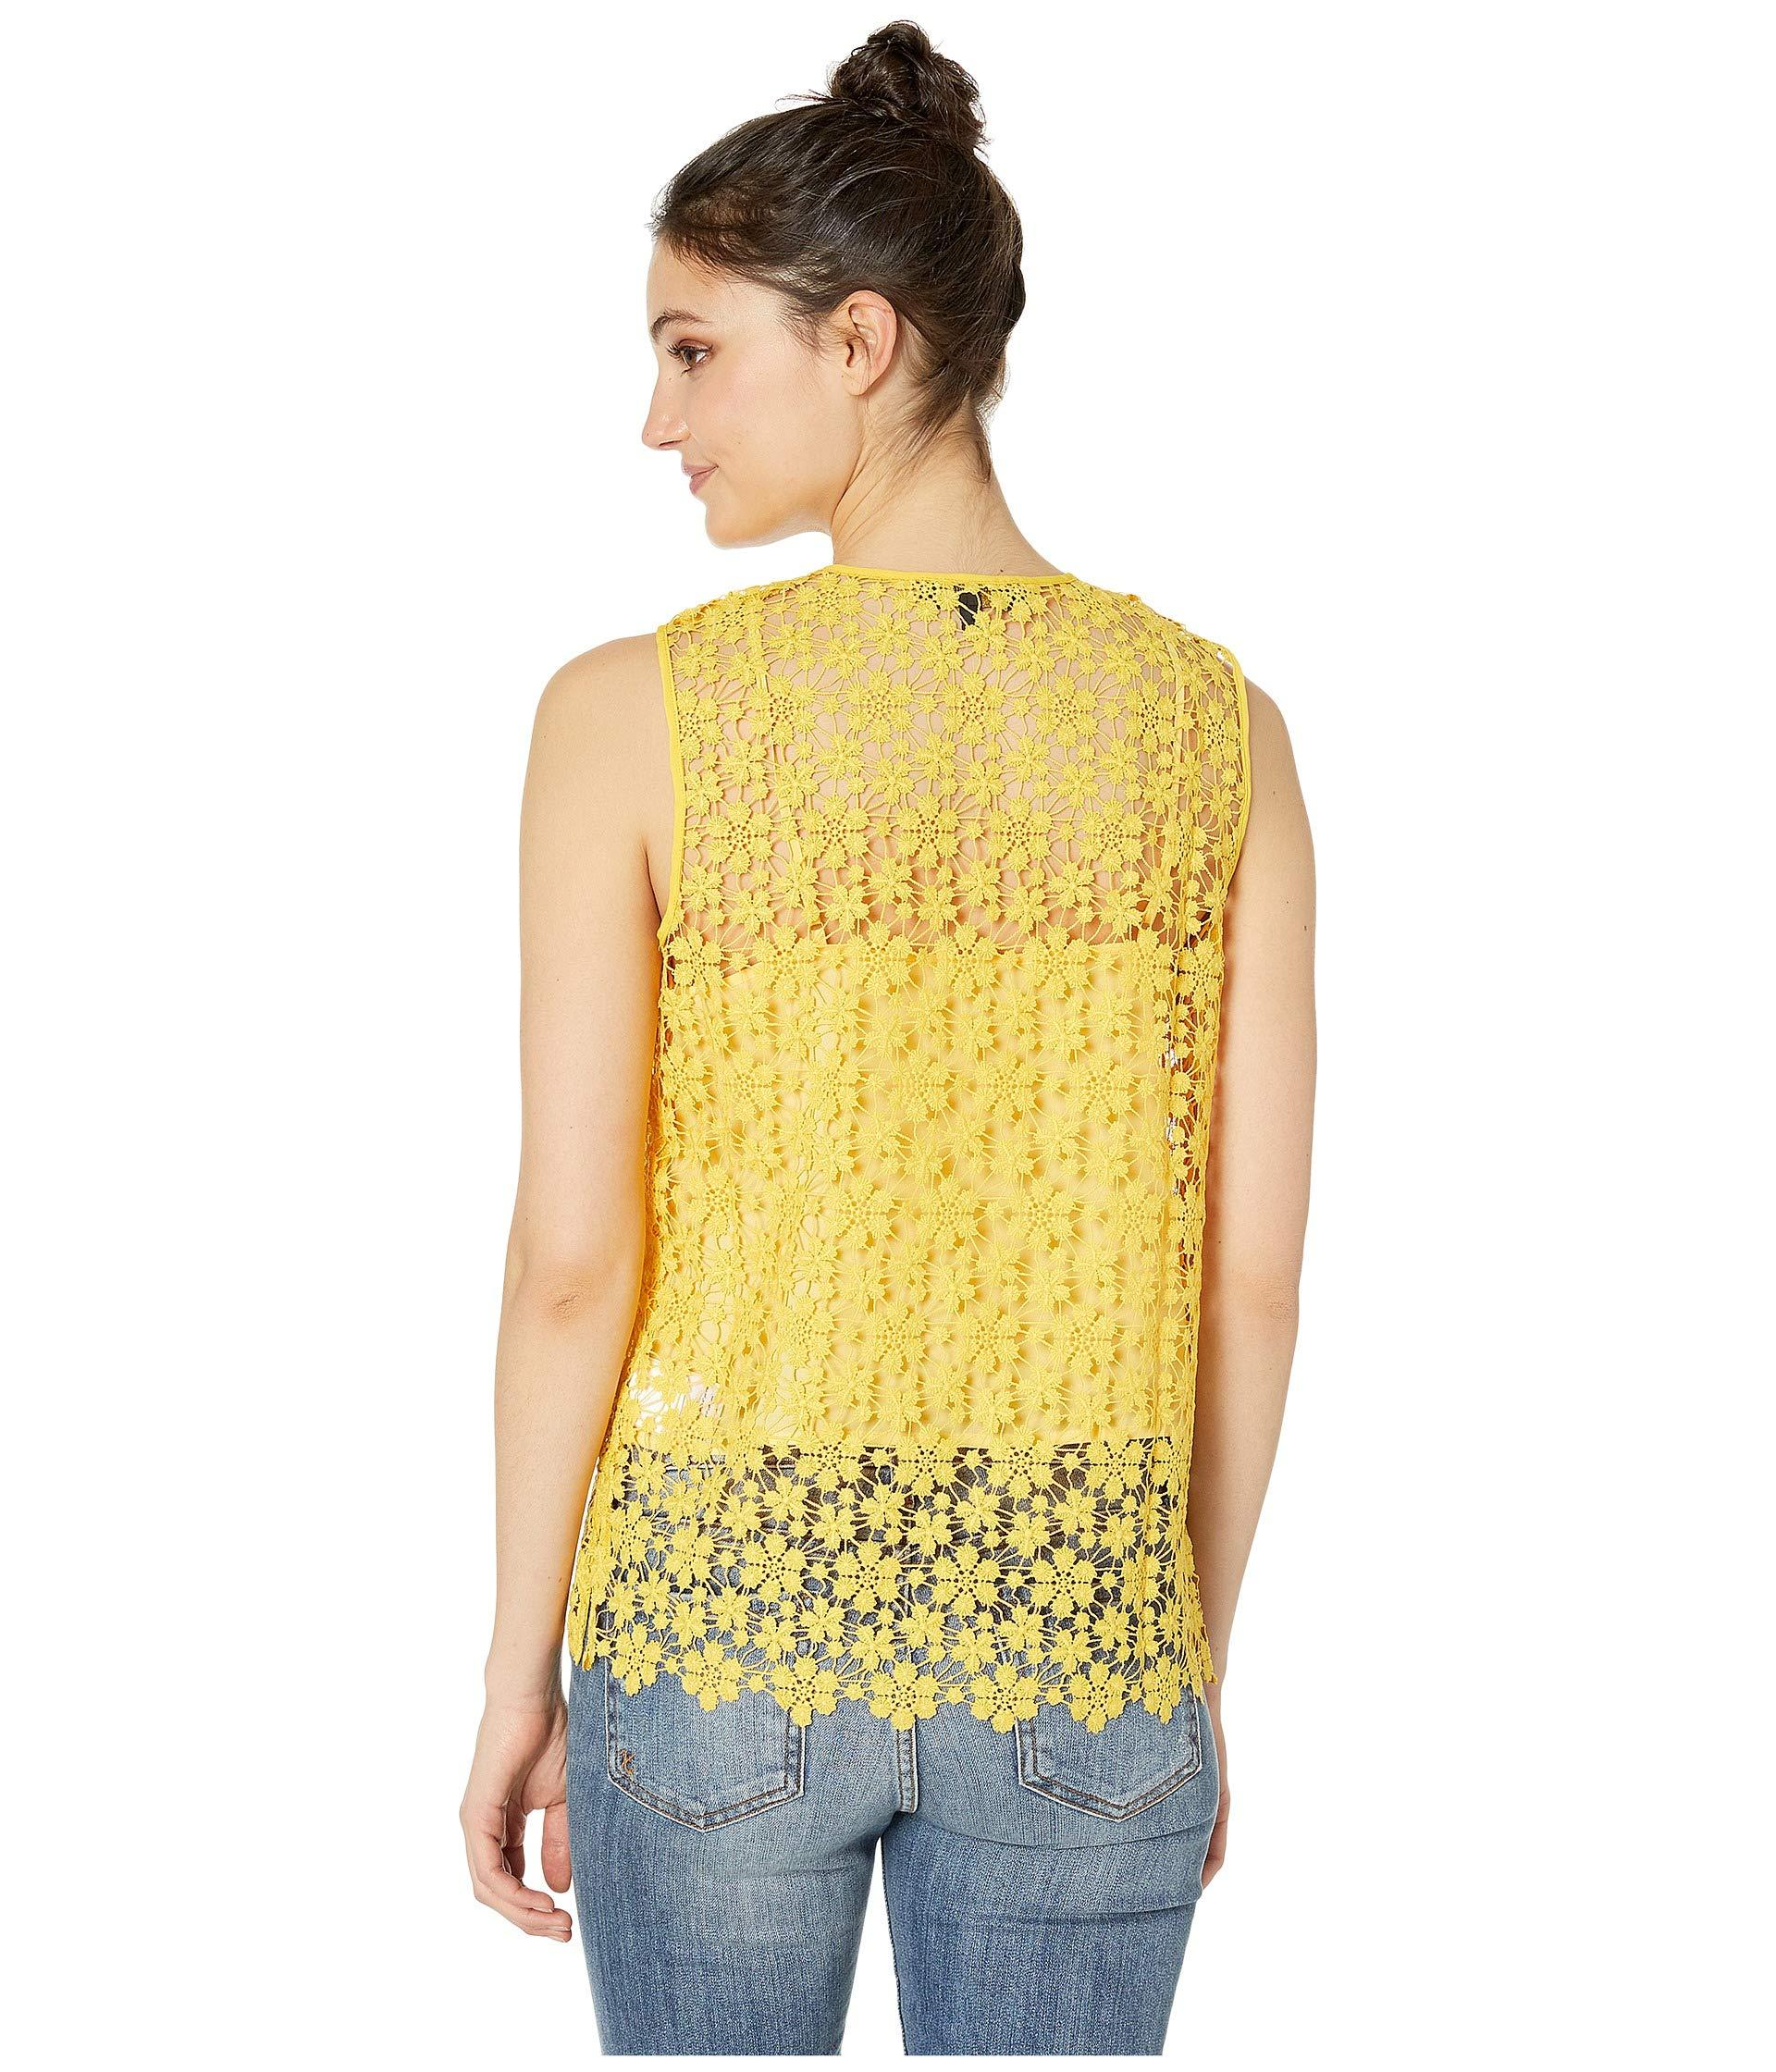 0bf7f36c884ad Juicy Couture - Yellow Lydia Guipure Lace Sleeveless Top - Lyst. View  fullscreen